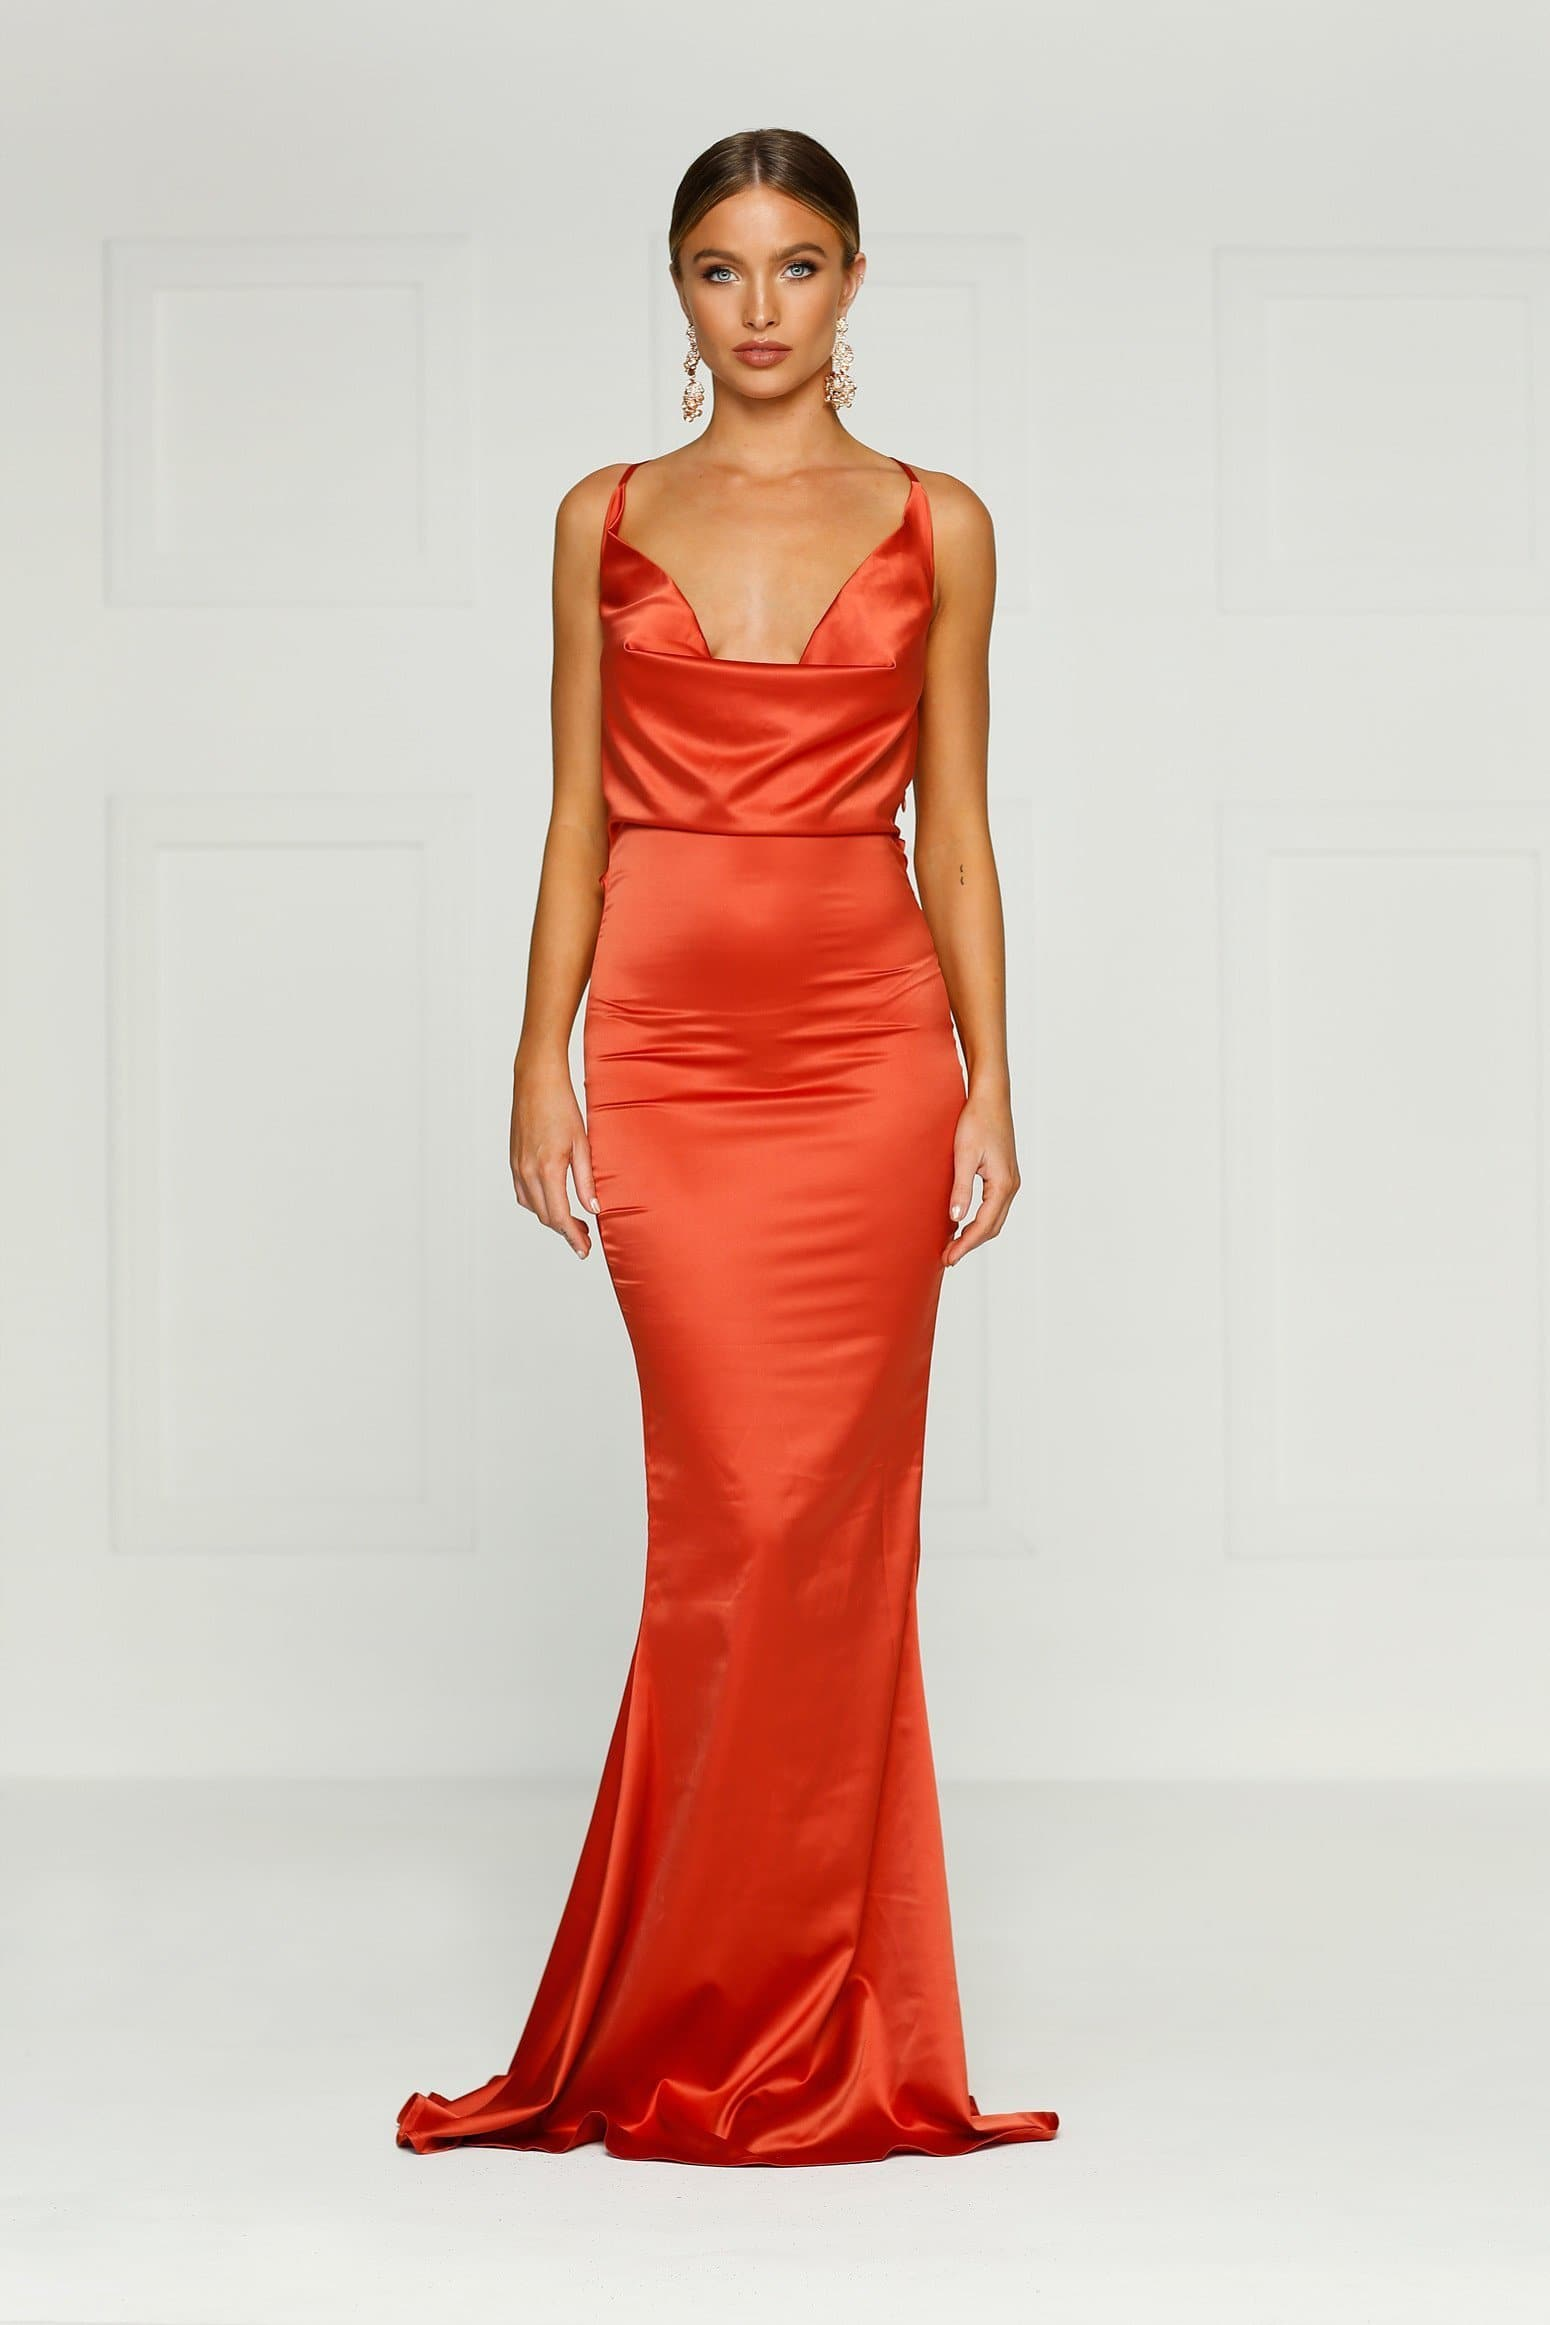 Crisantemi - Rust Satin Dress with Cowl Neckline and Low Back